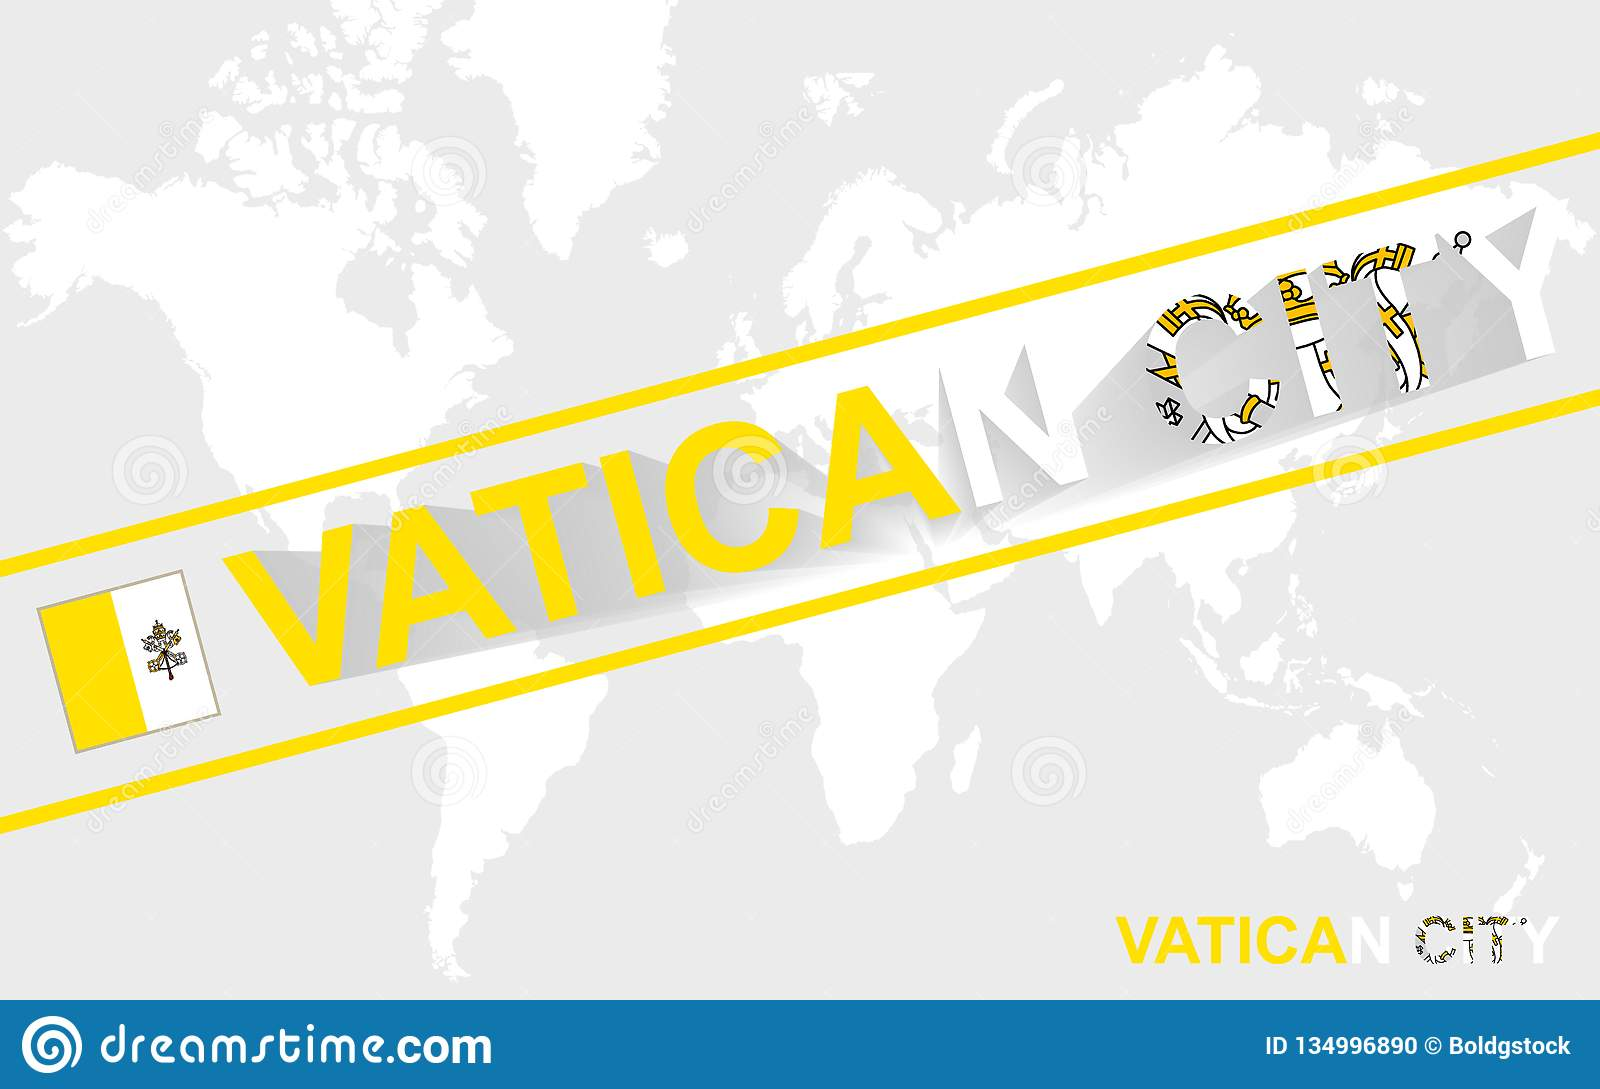 Vatican City On World Map.Vatican City Map Flag And Text Illustration Stock Vector